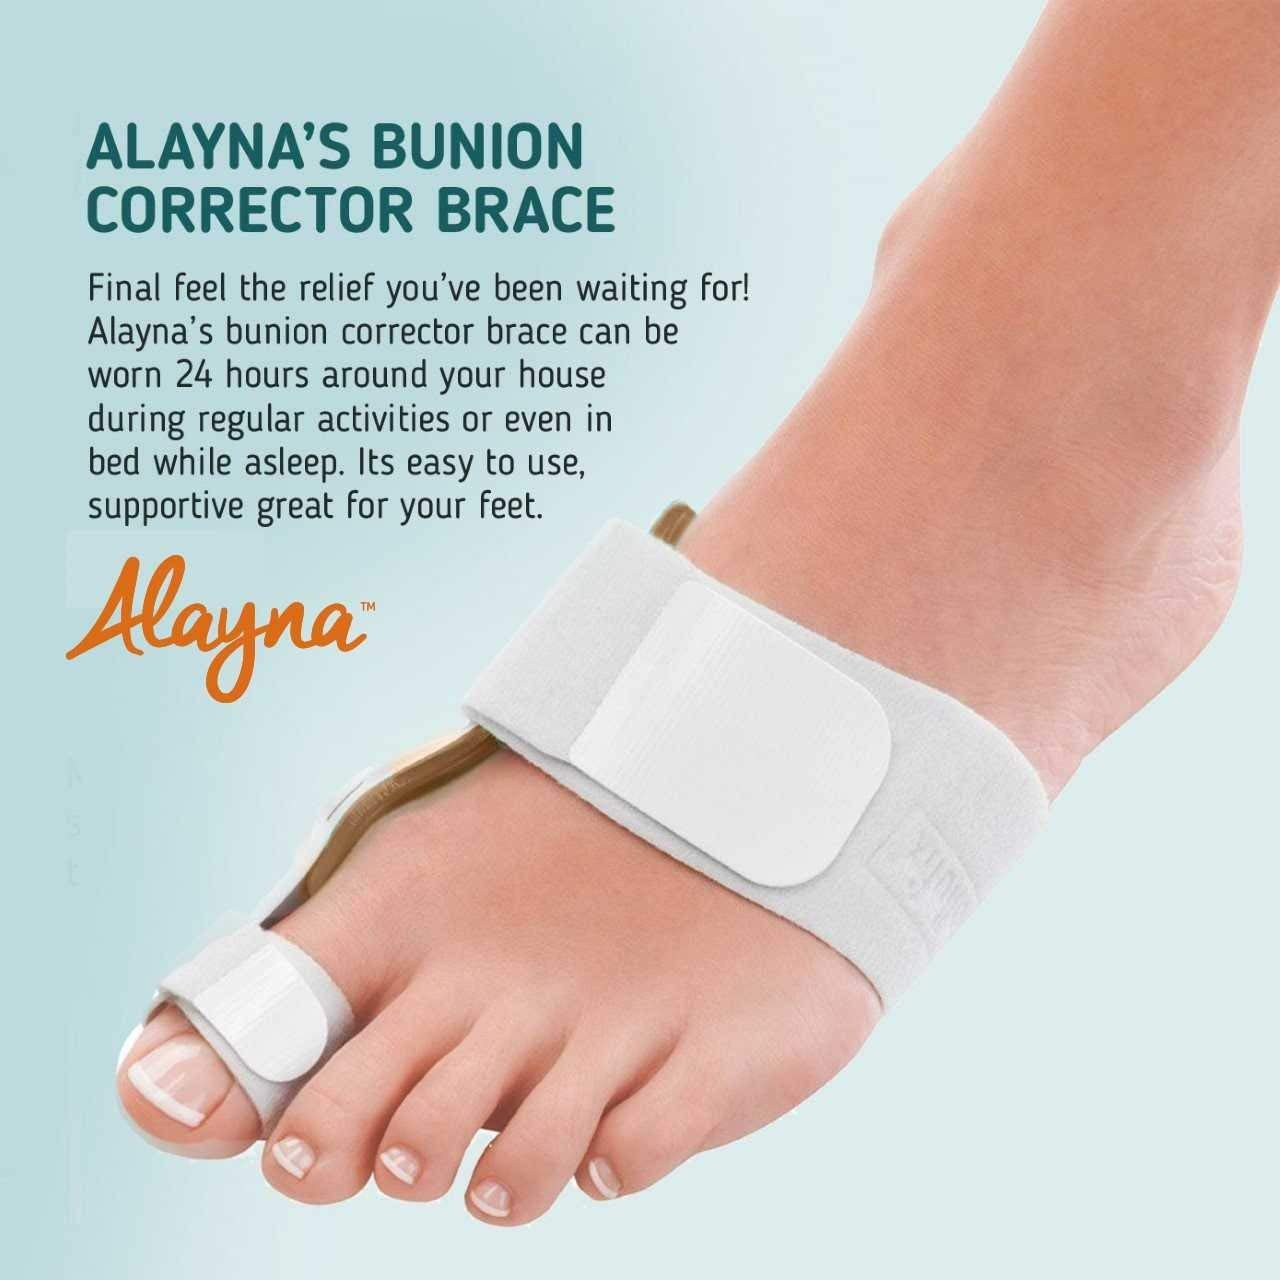 Bunion Corrector and Bunion Relief Orthopedic Bunion Splint Pads for Men and Women Hammer Toe Straightener and Bunion Protector Cushions- Relieve Hallux Valgus Foot Pain and Soothe Sore Bunions by Alayna (Image #5)